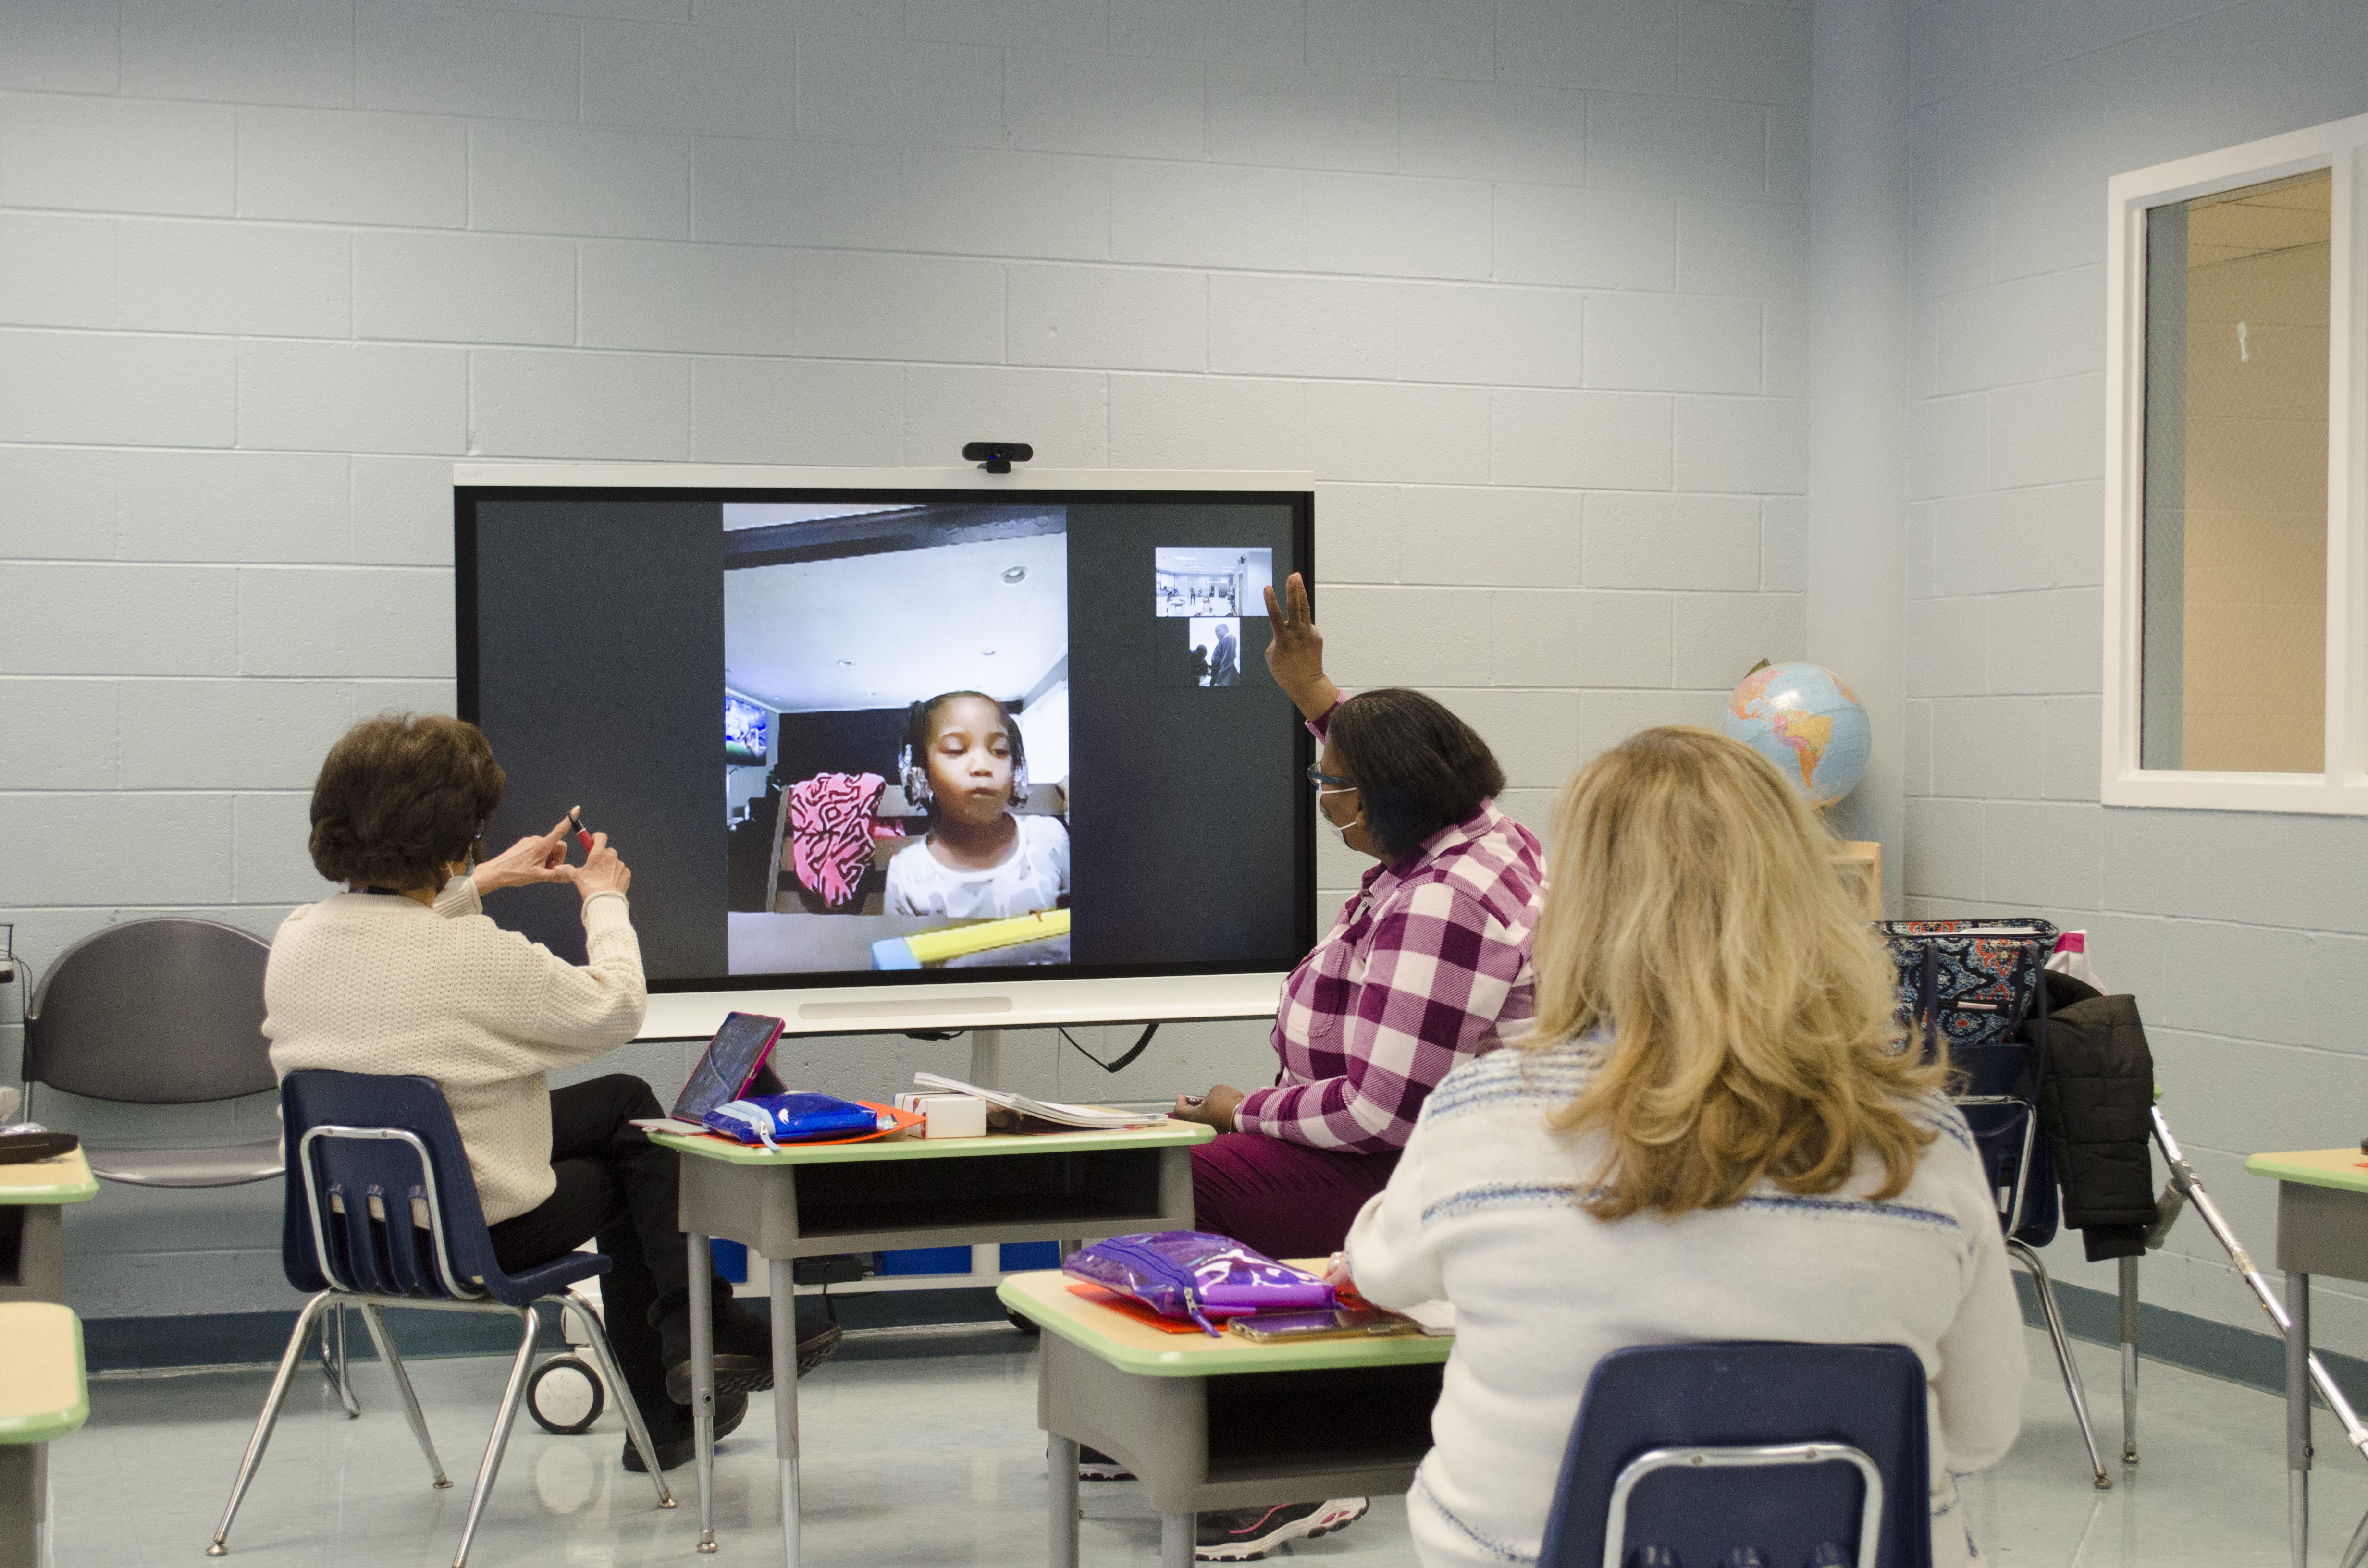 The Lighthouses' preschool teachers conducting e-learning over zoom, and sit in front of a large screen, talking with their students